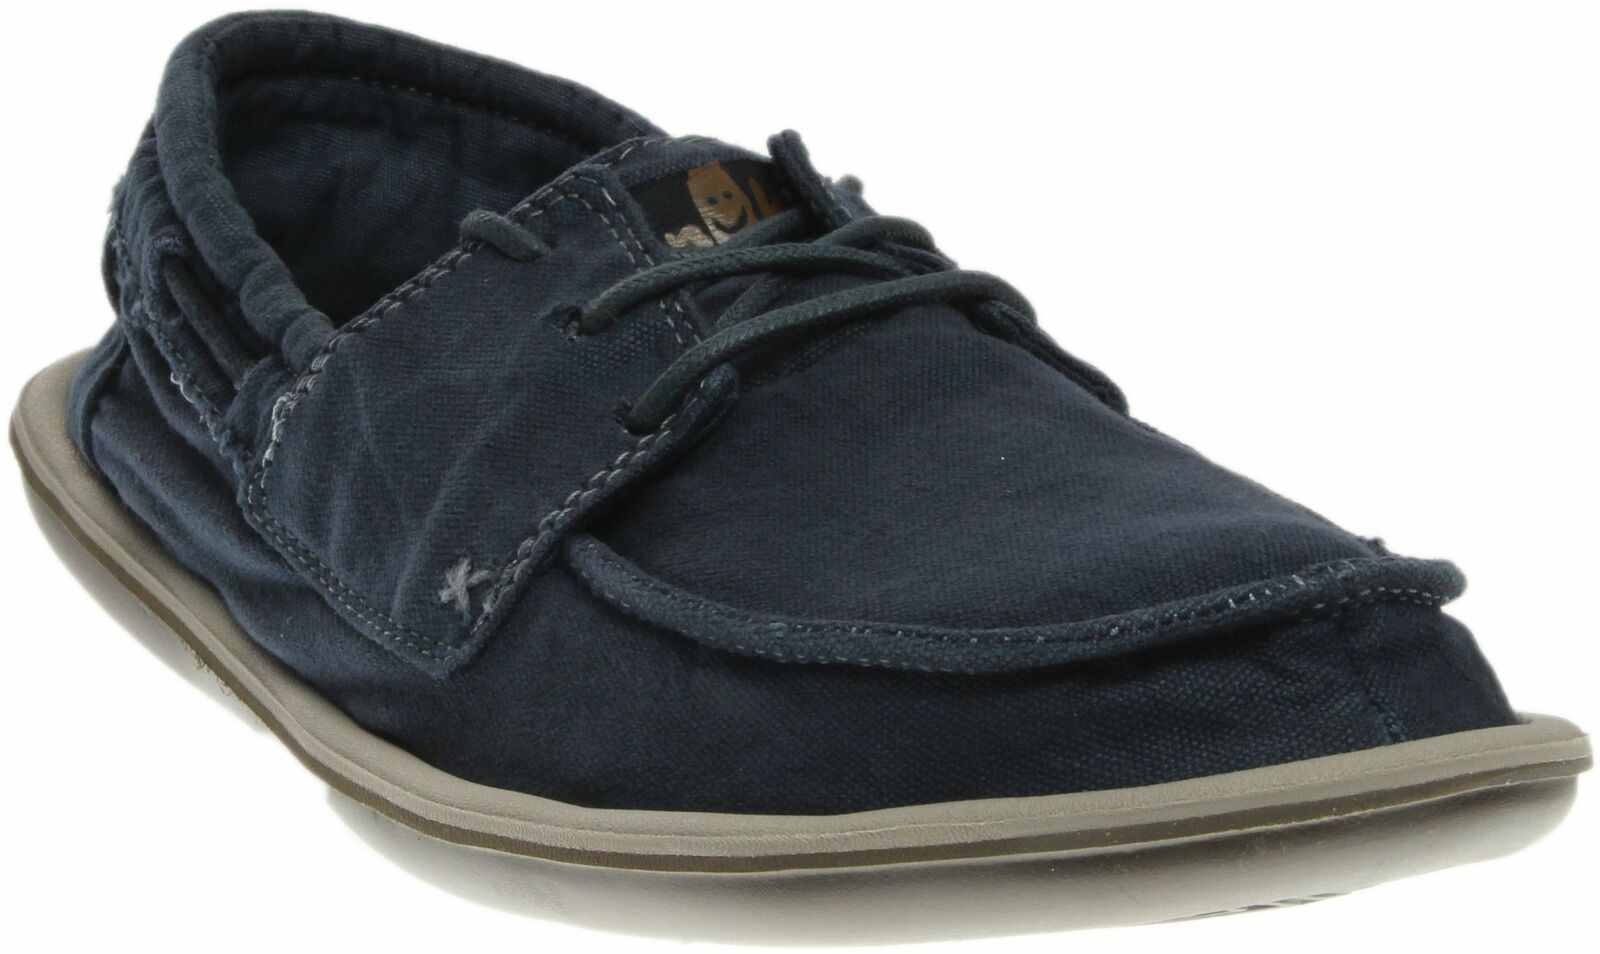 Sanuk Dinghy  Casual   Casual Shoes - Navy - Mens